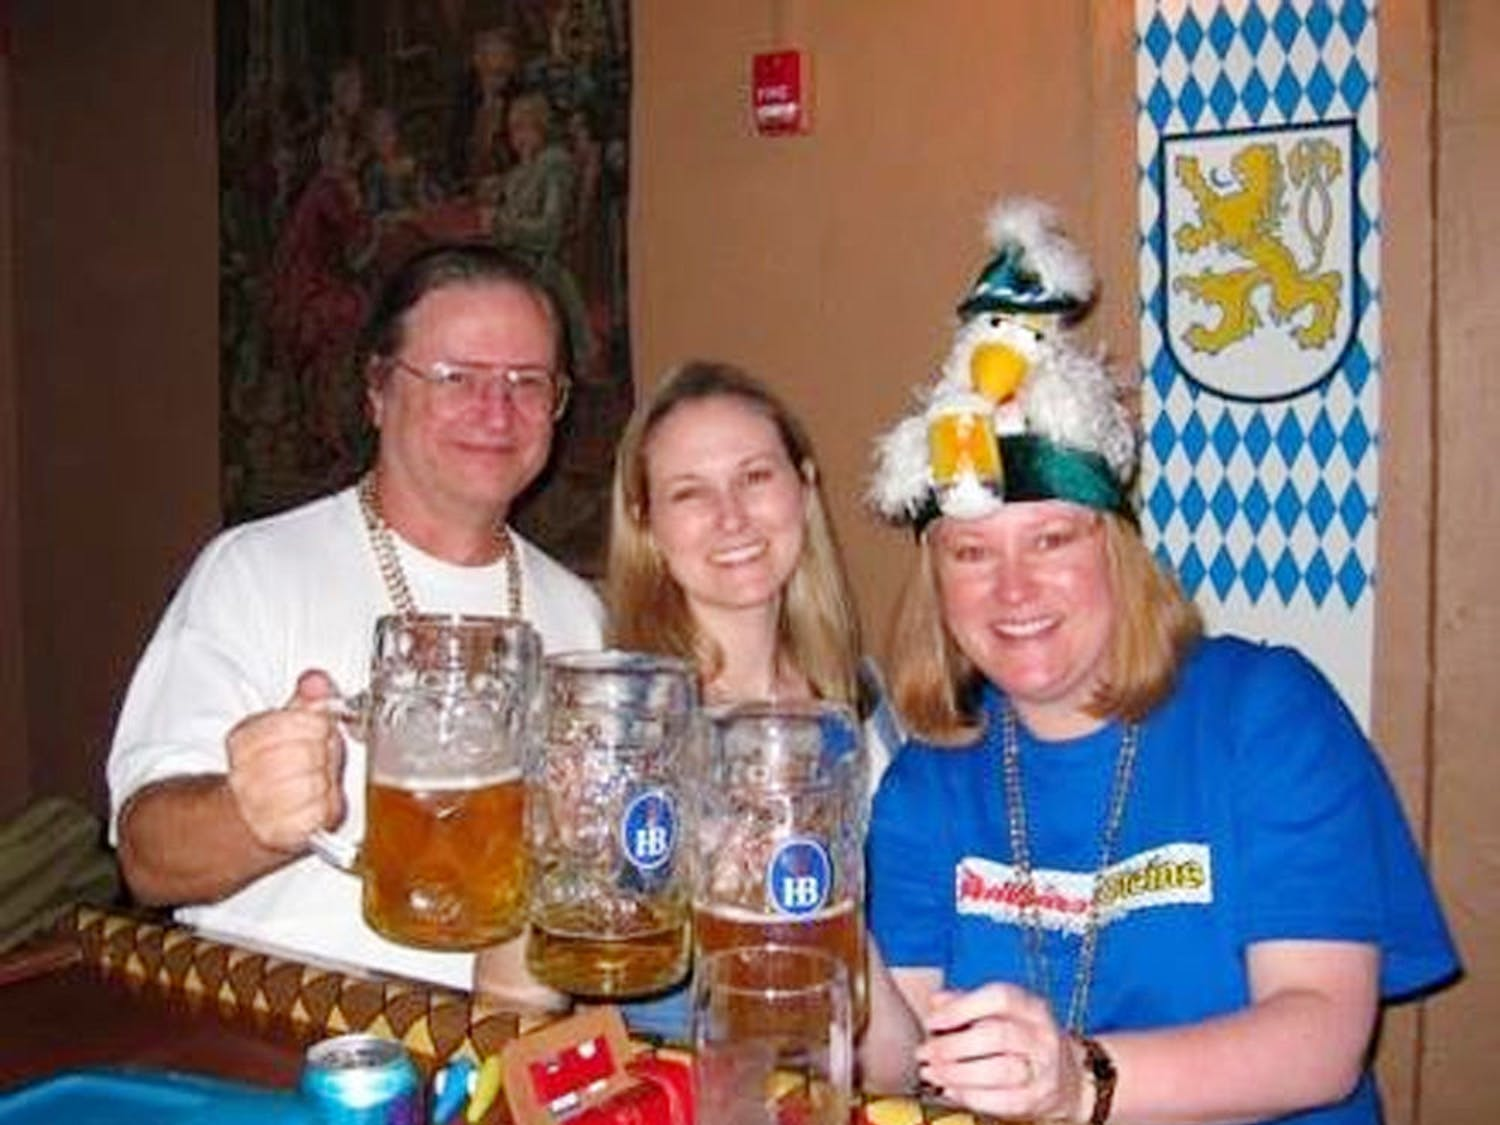 Owners Berkeley Hoflund (center) and her late father, Gar Hoflund, celebrate their first Oktoberfest at Stubbies & Steins pub with Berkeley's older sister, Bryce Hoflund, in 2008.